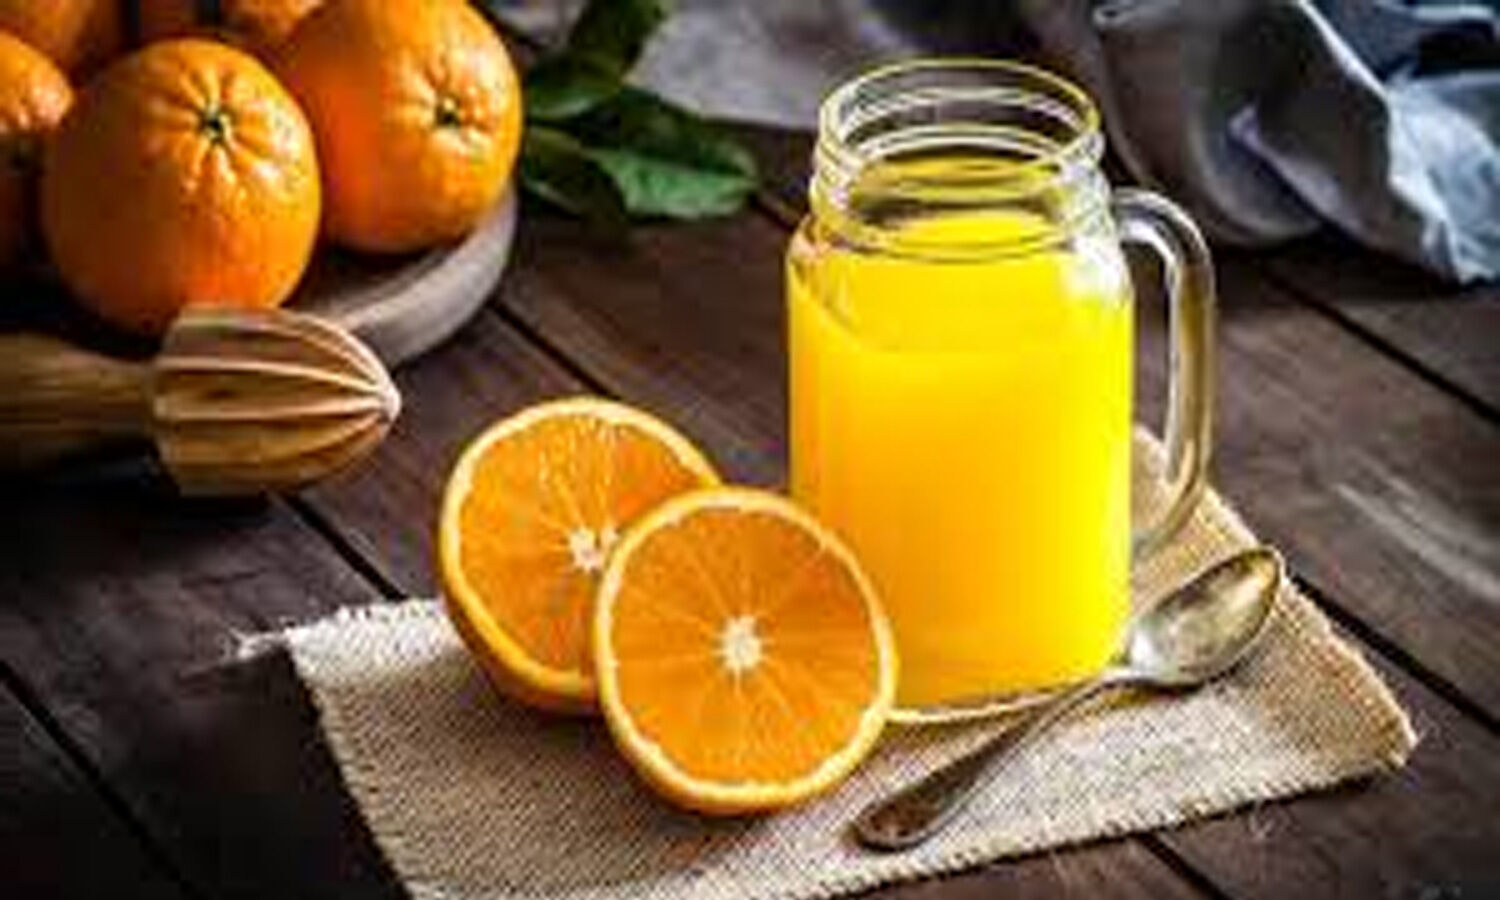 Orange juice may reverse obesity and reduce risk of heart disease and diabetes